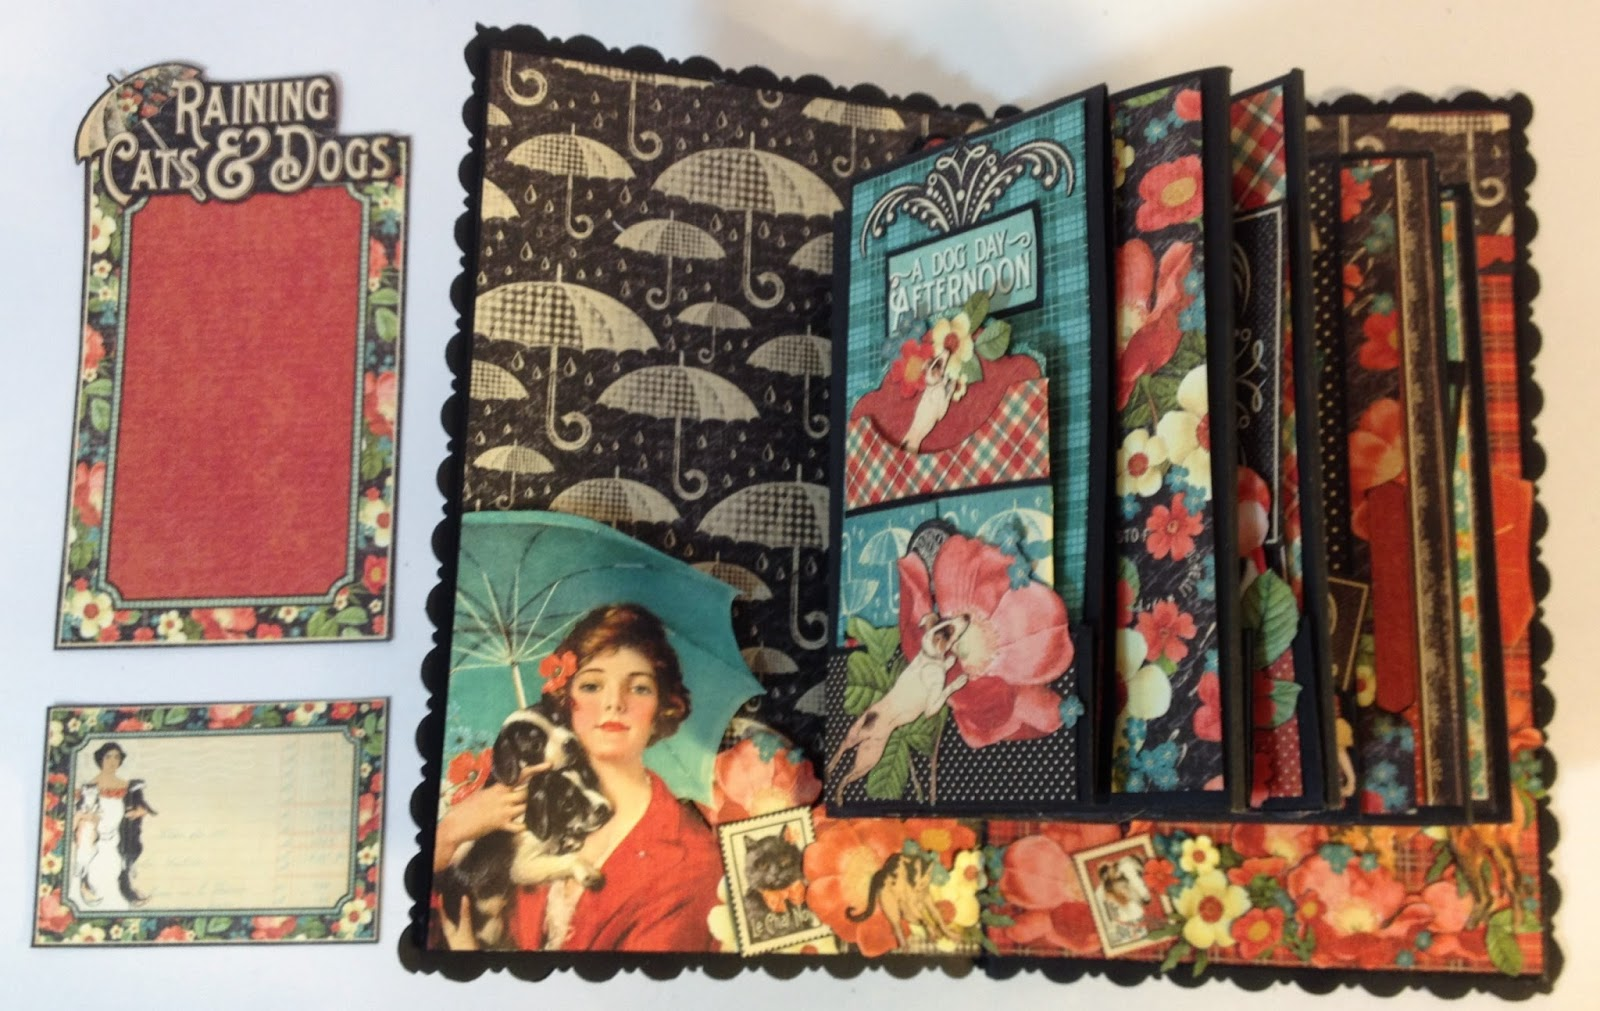 How to make scrapbook video - In This Video I Will Show How I Decorate The Inside Covers And Tell A Bit About The Outside Cover Decor That I Will Do When I Have Made The Dog House